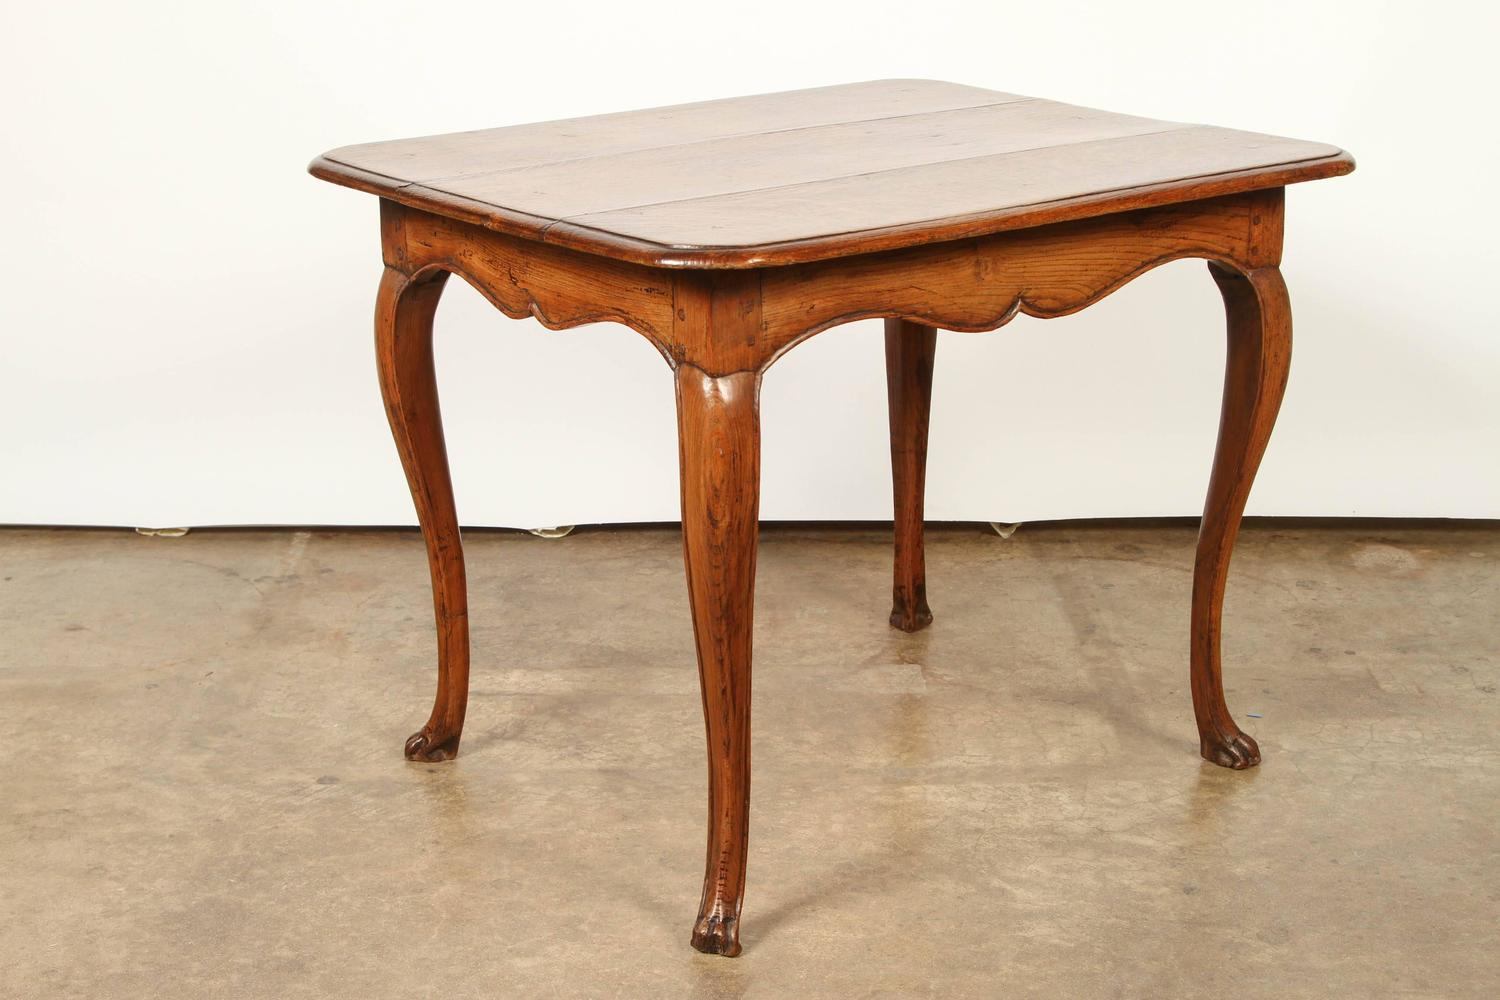 French Provincial Table For Sale at 1stdibs